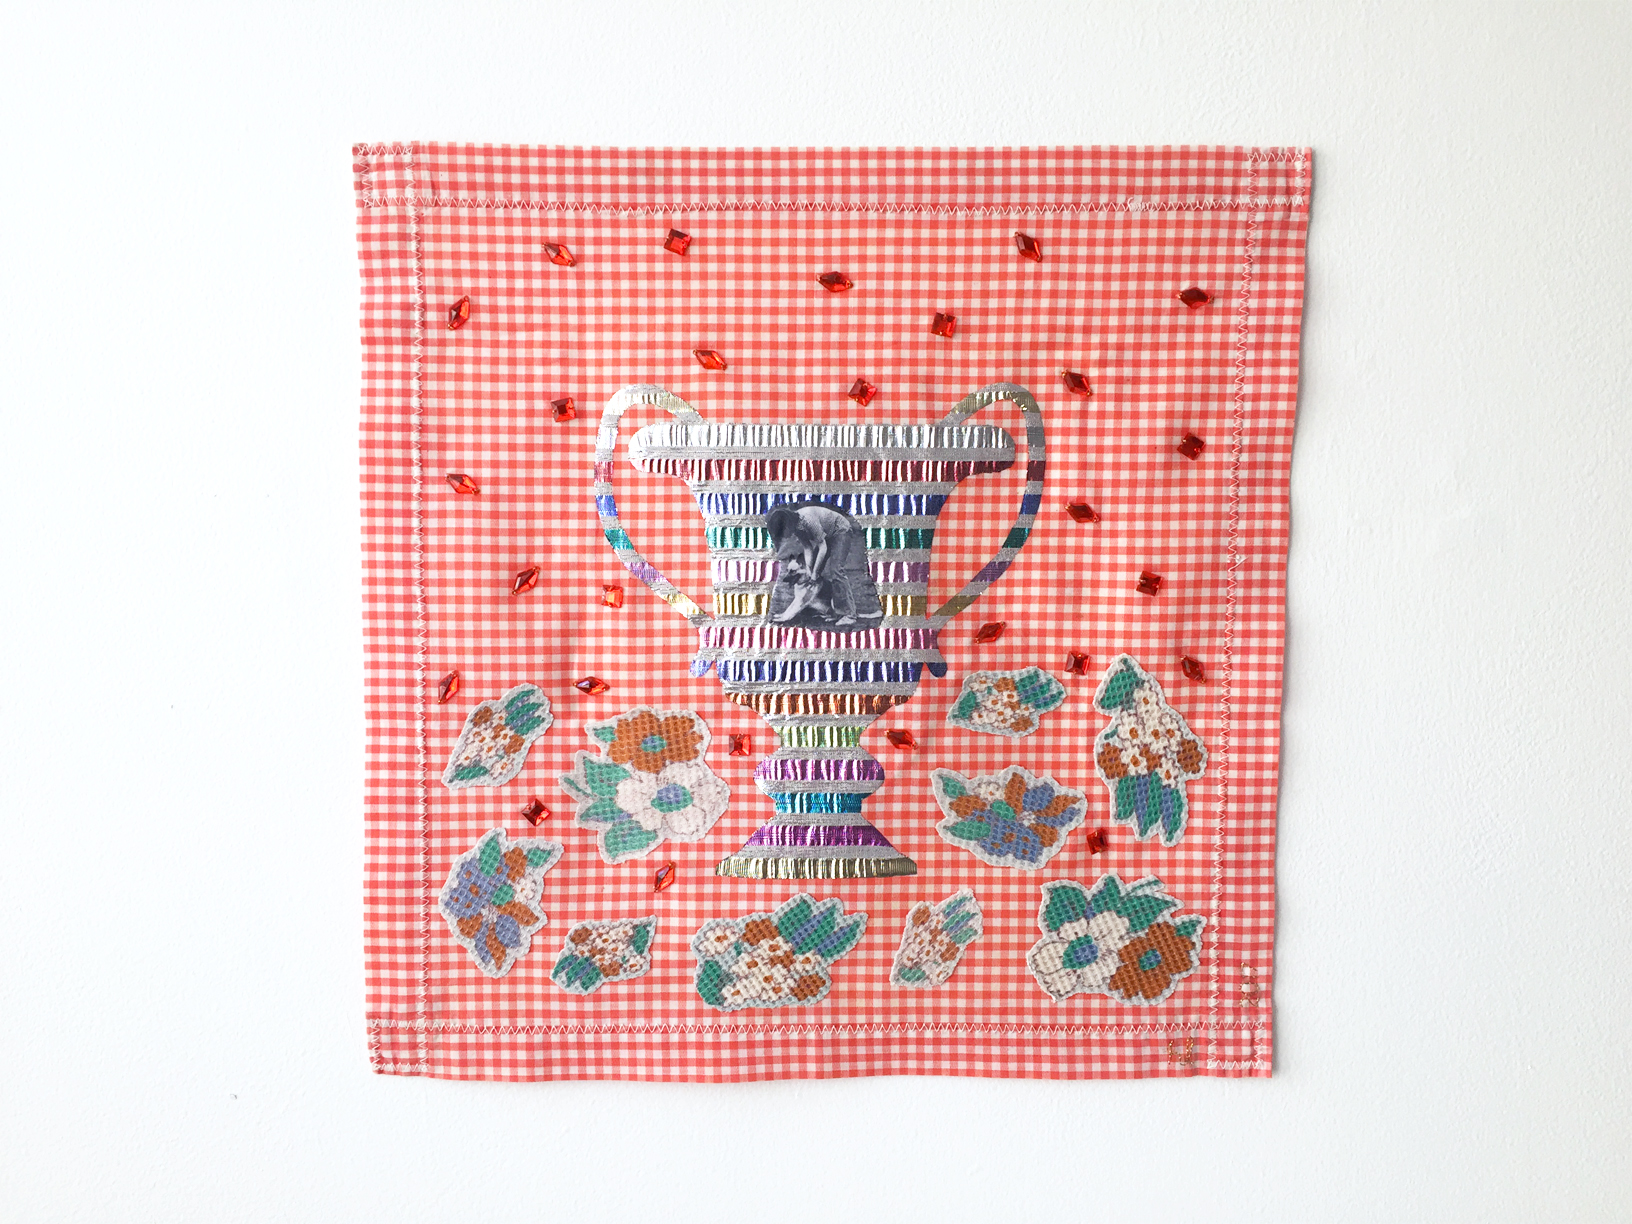 Number 1 Best Friend #3, 2017, textile object, found fabric on handmade cotton placemat, digital print on cotton, polyester, found plastic gems, 360mm x 360mm